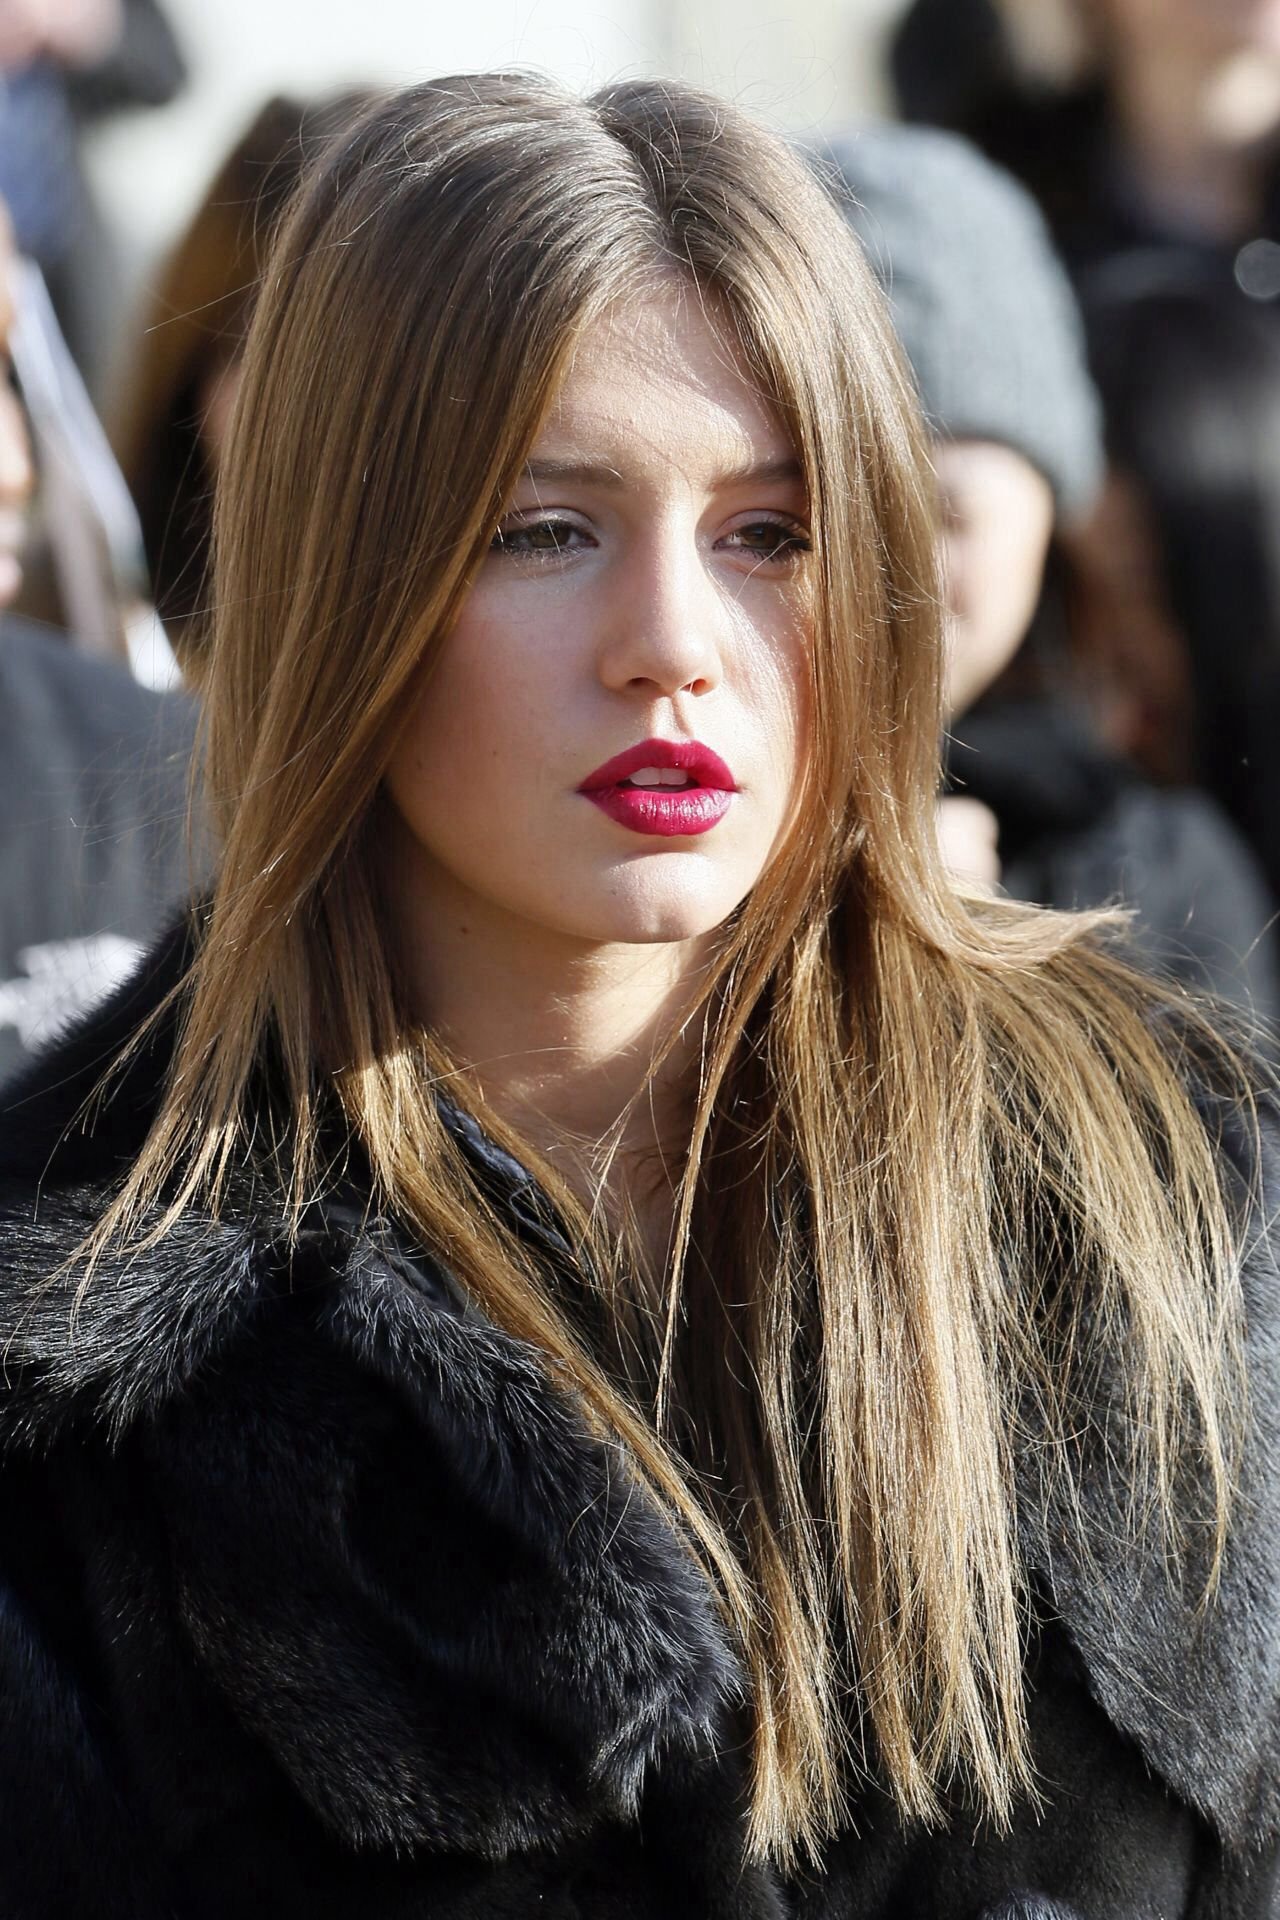 Dark Red Lips Discreed Eyes And Staright Hair Adele